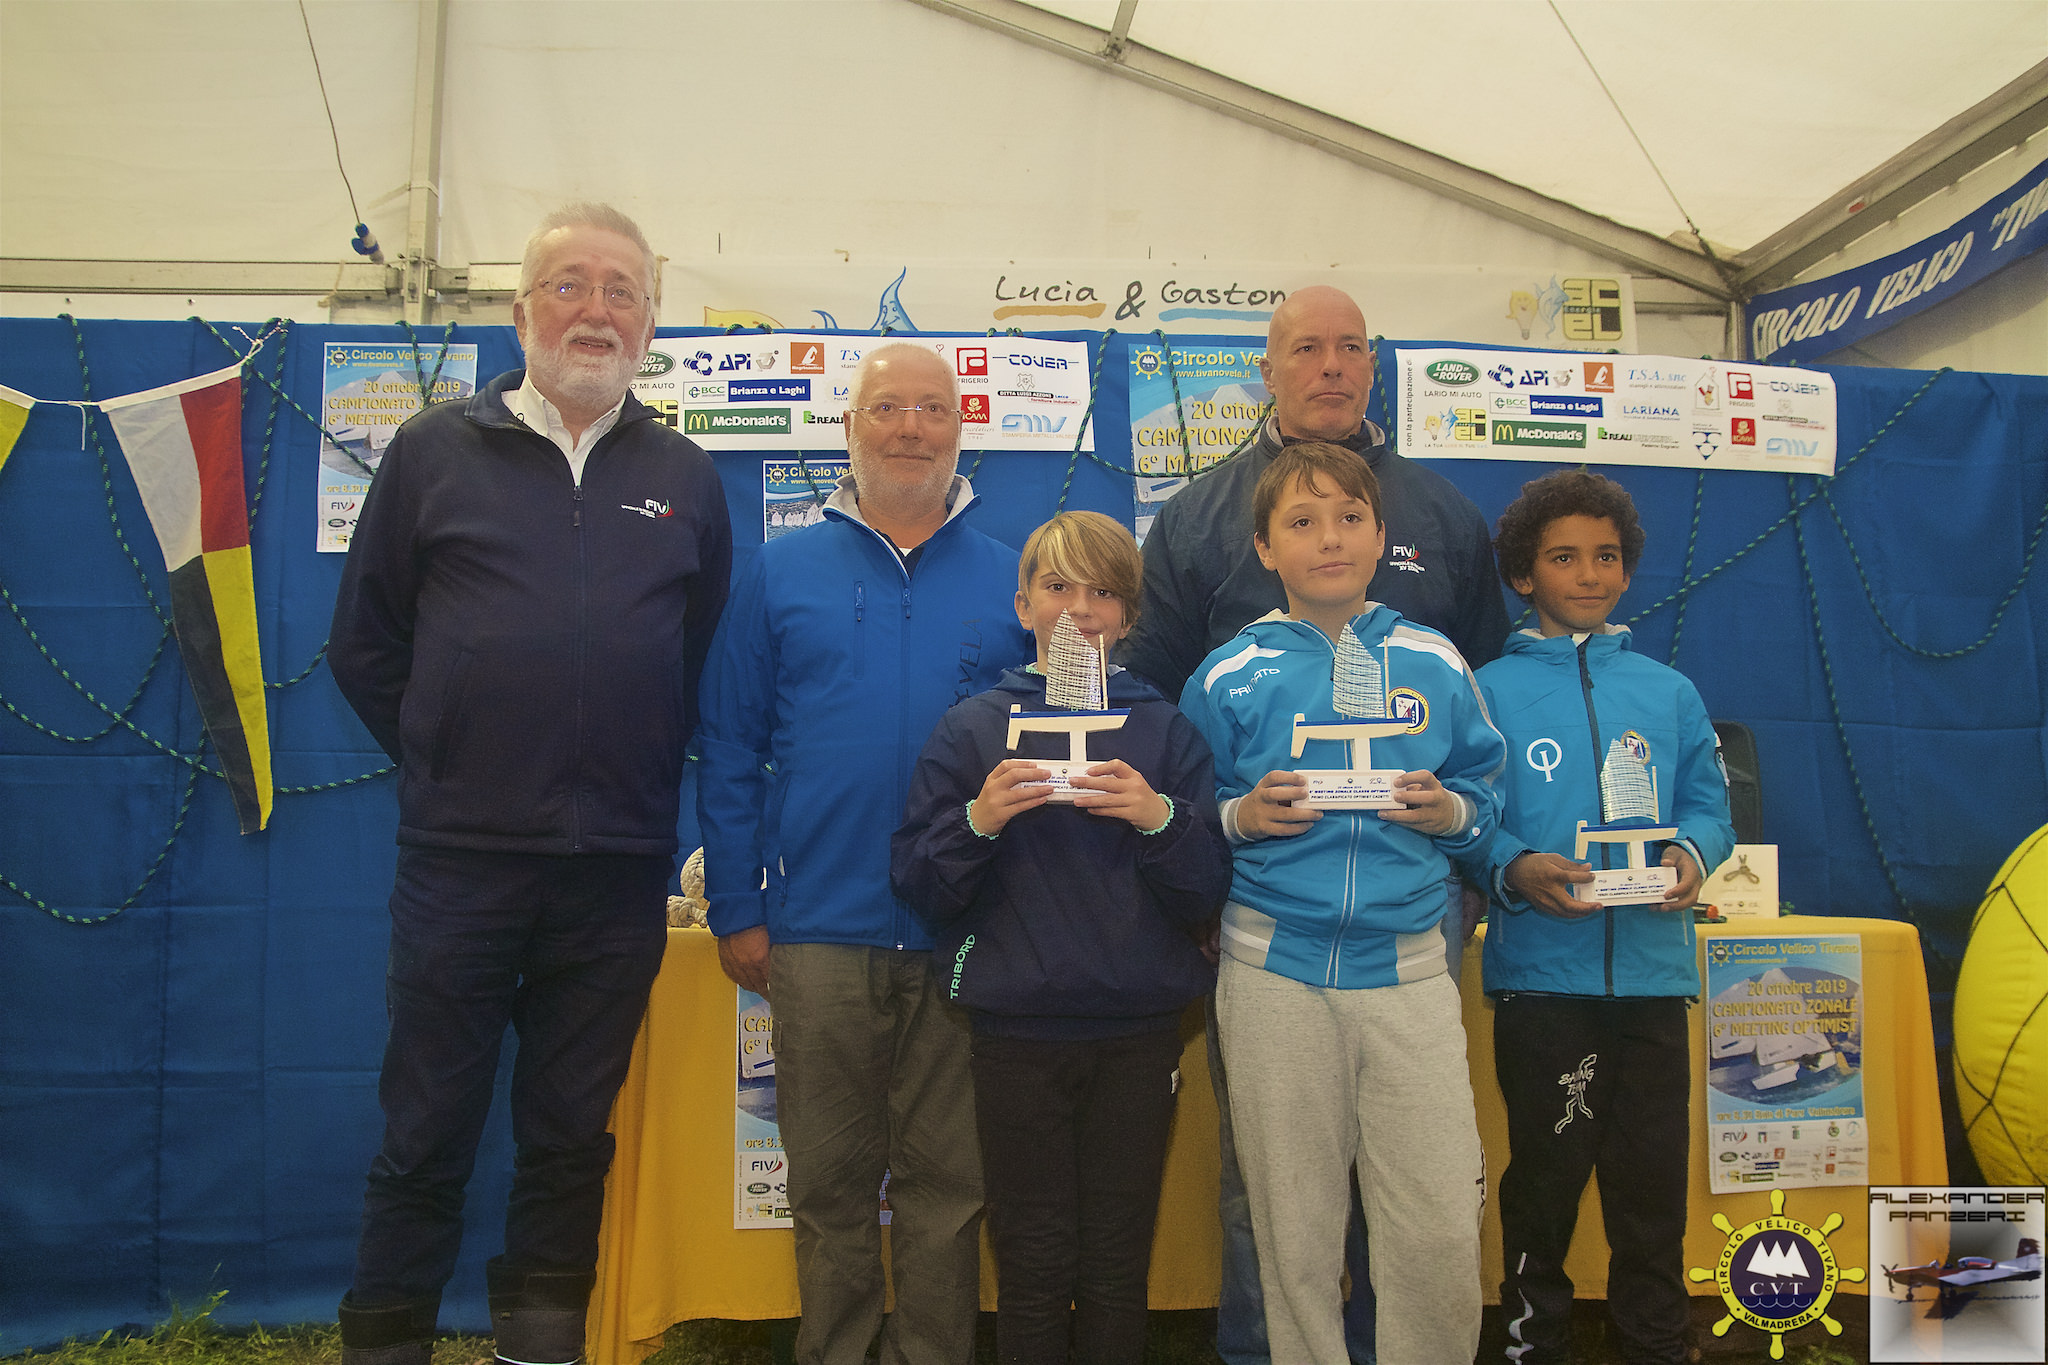 REGATA INTERLAGHINA: VA IN SCENA IL 6° MEETING OPTIMIST